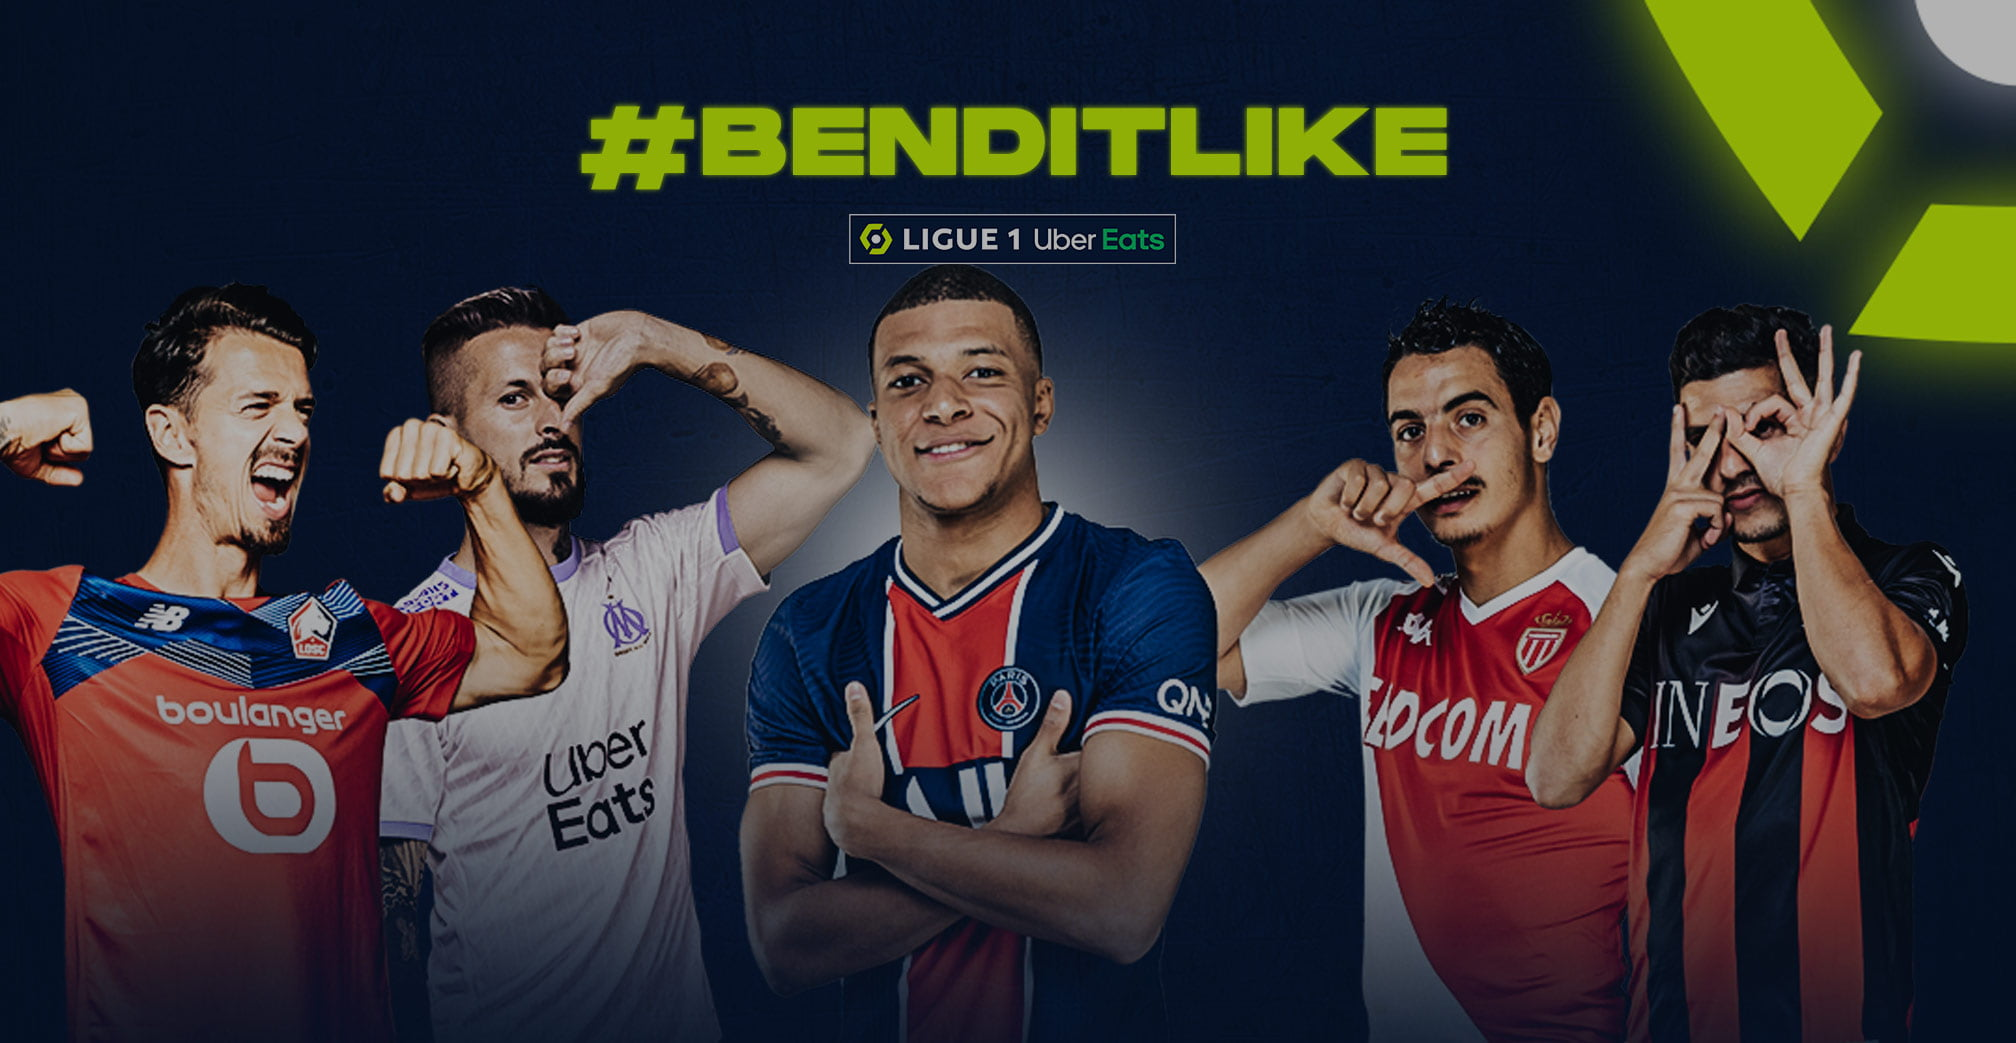 The Lfp And Tiktok Partner To Celebrate Ligue 1 Uber Eats